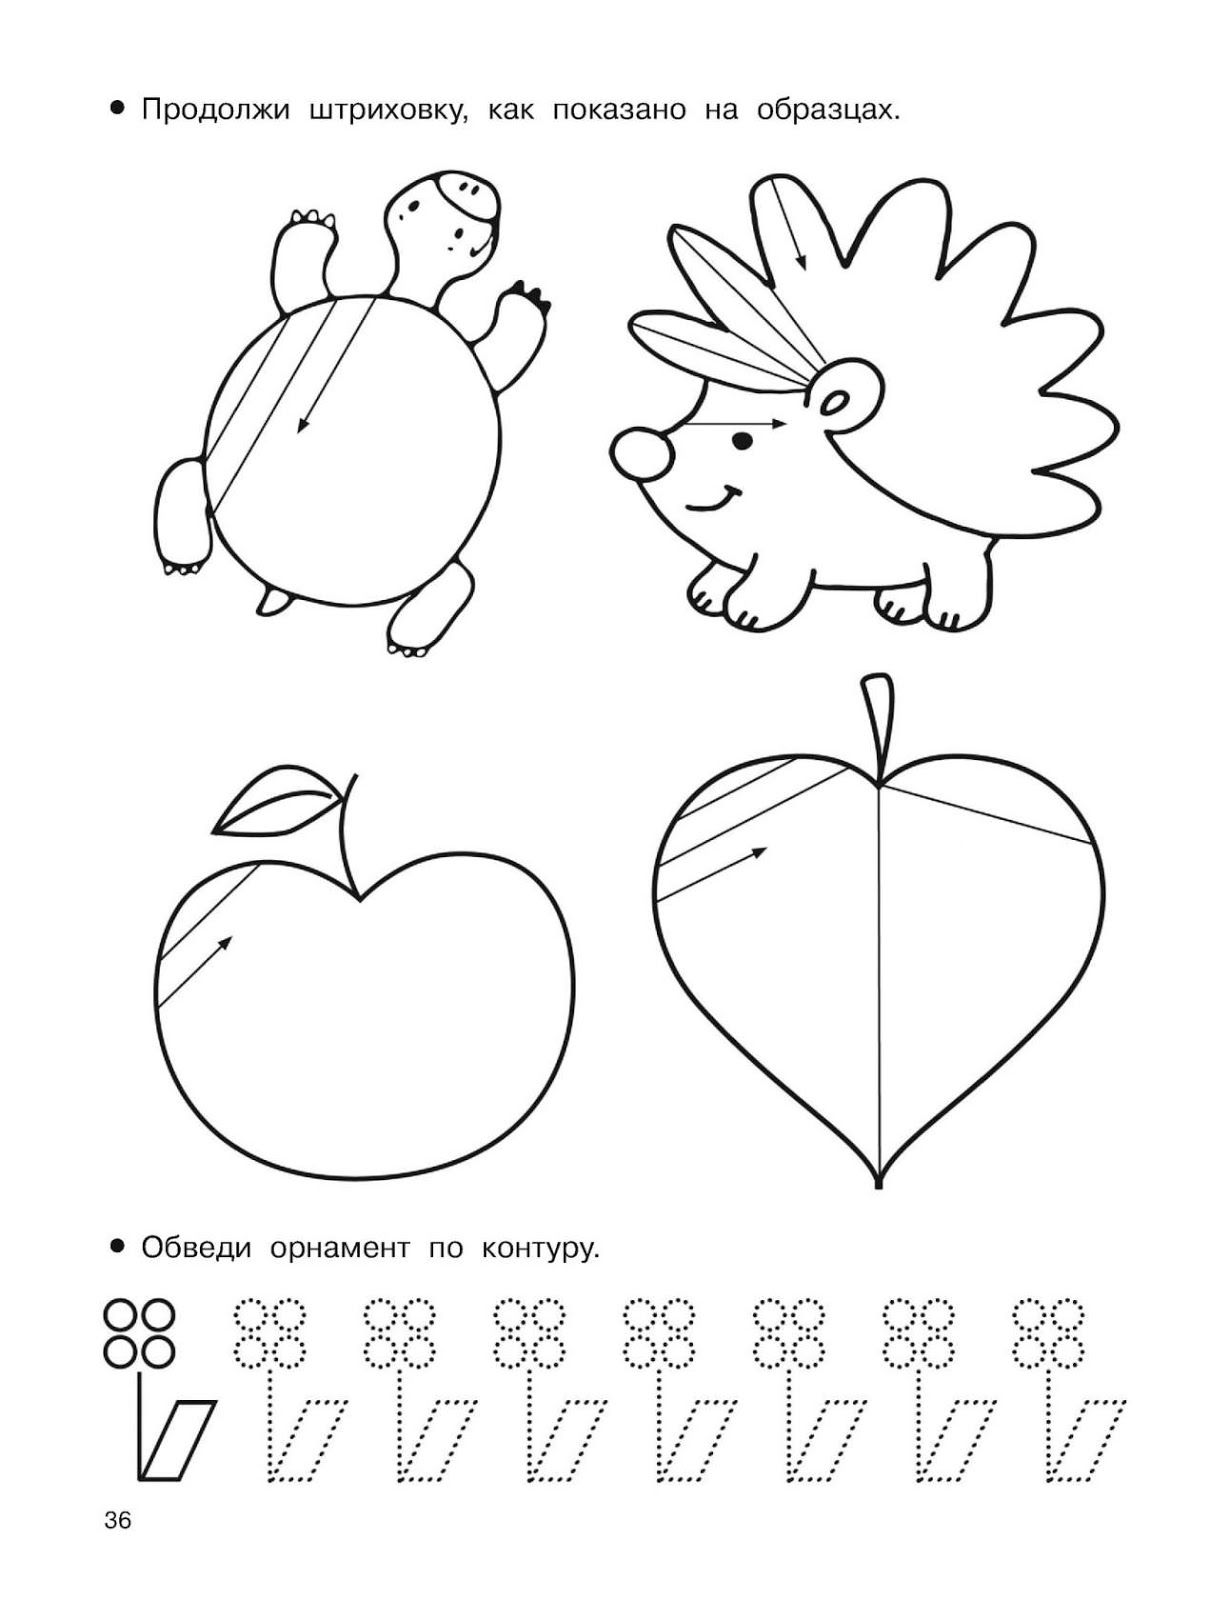 19 Best Preschool Worksheets Images On Best Worksheets